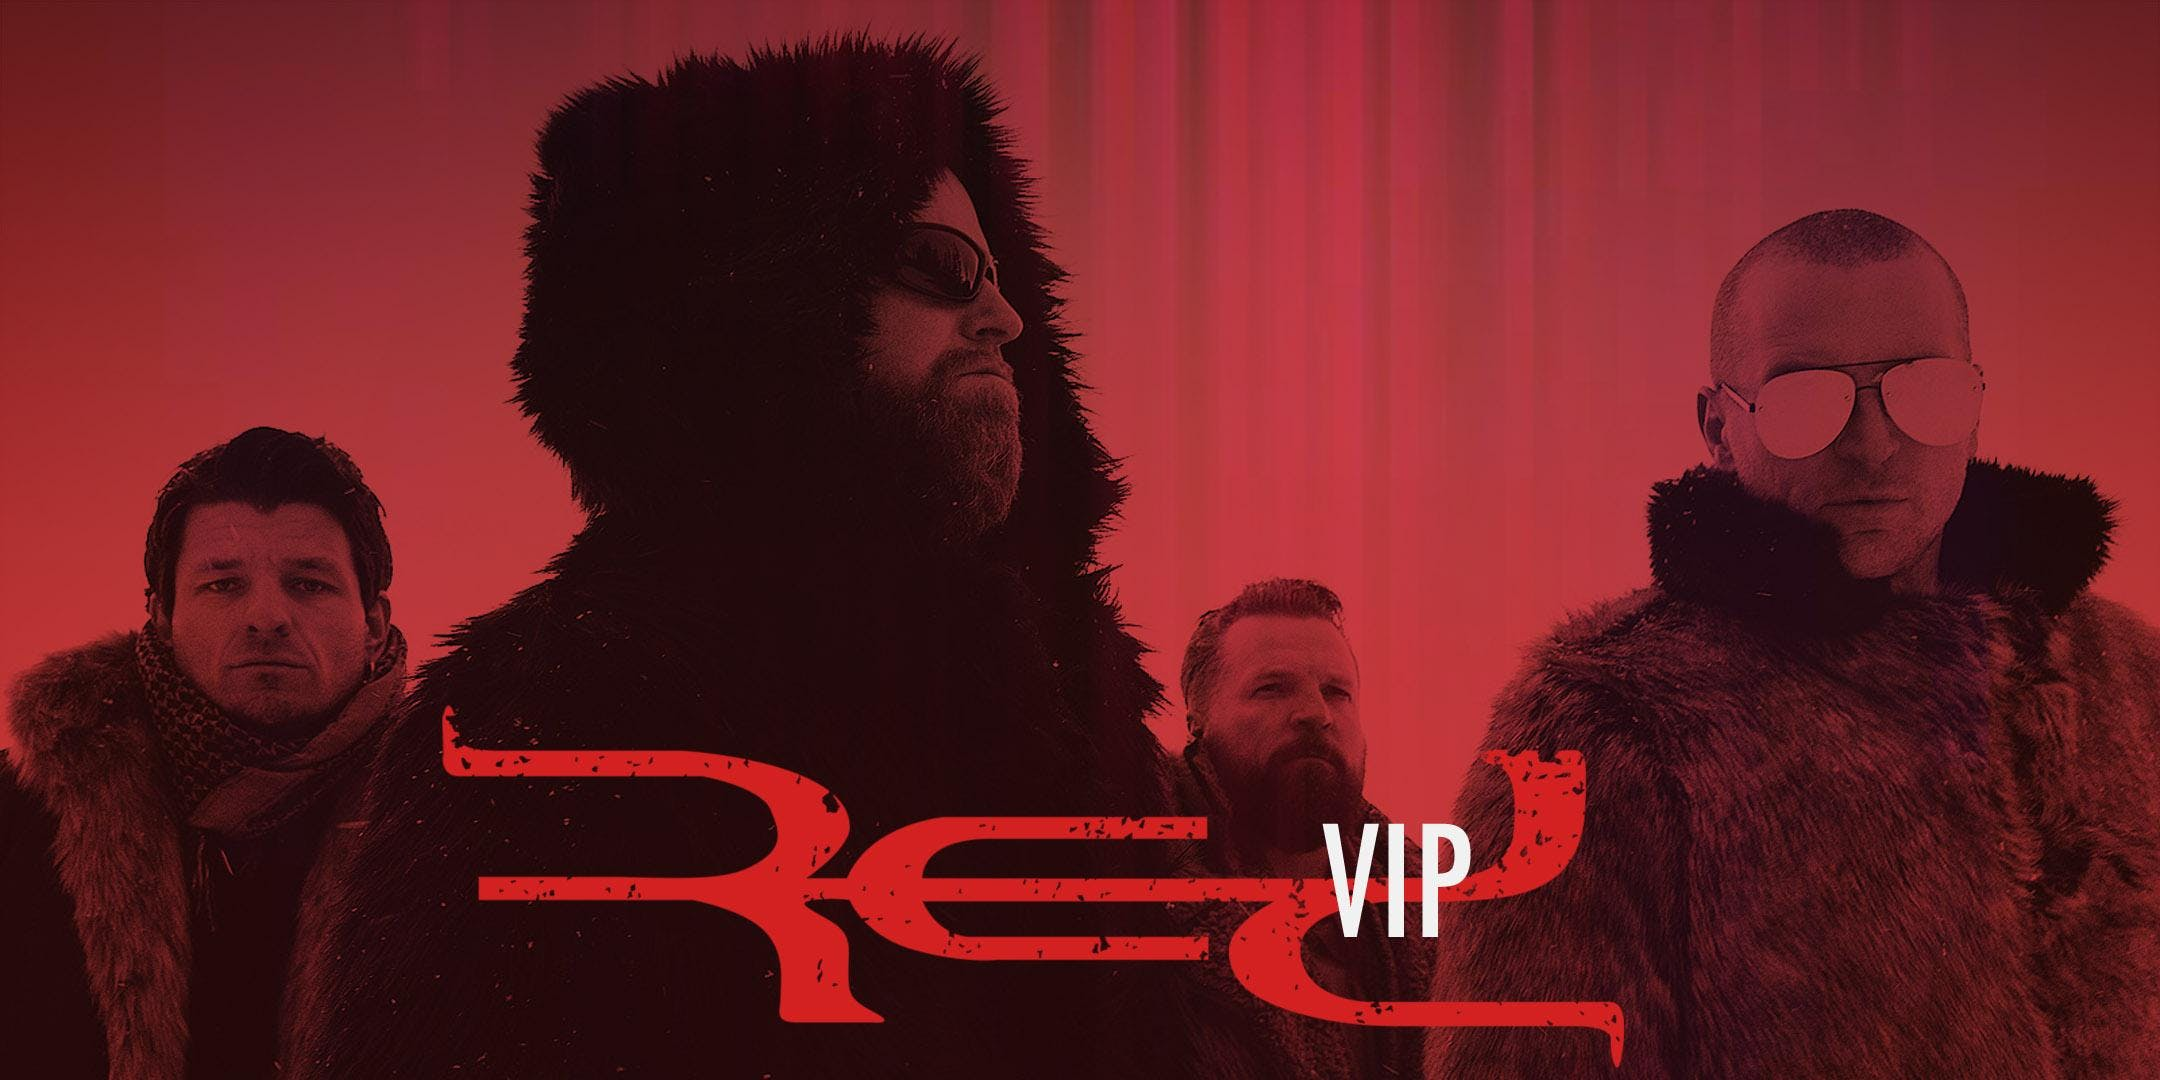 RED VIP EXPERIENCE - New York, NY